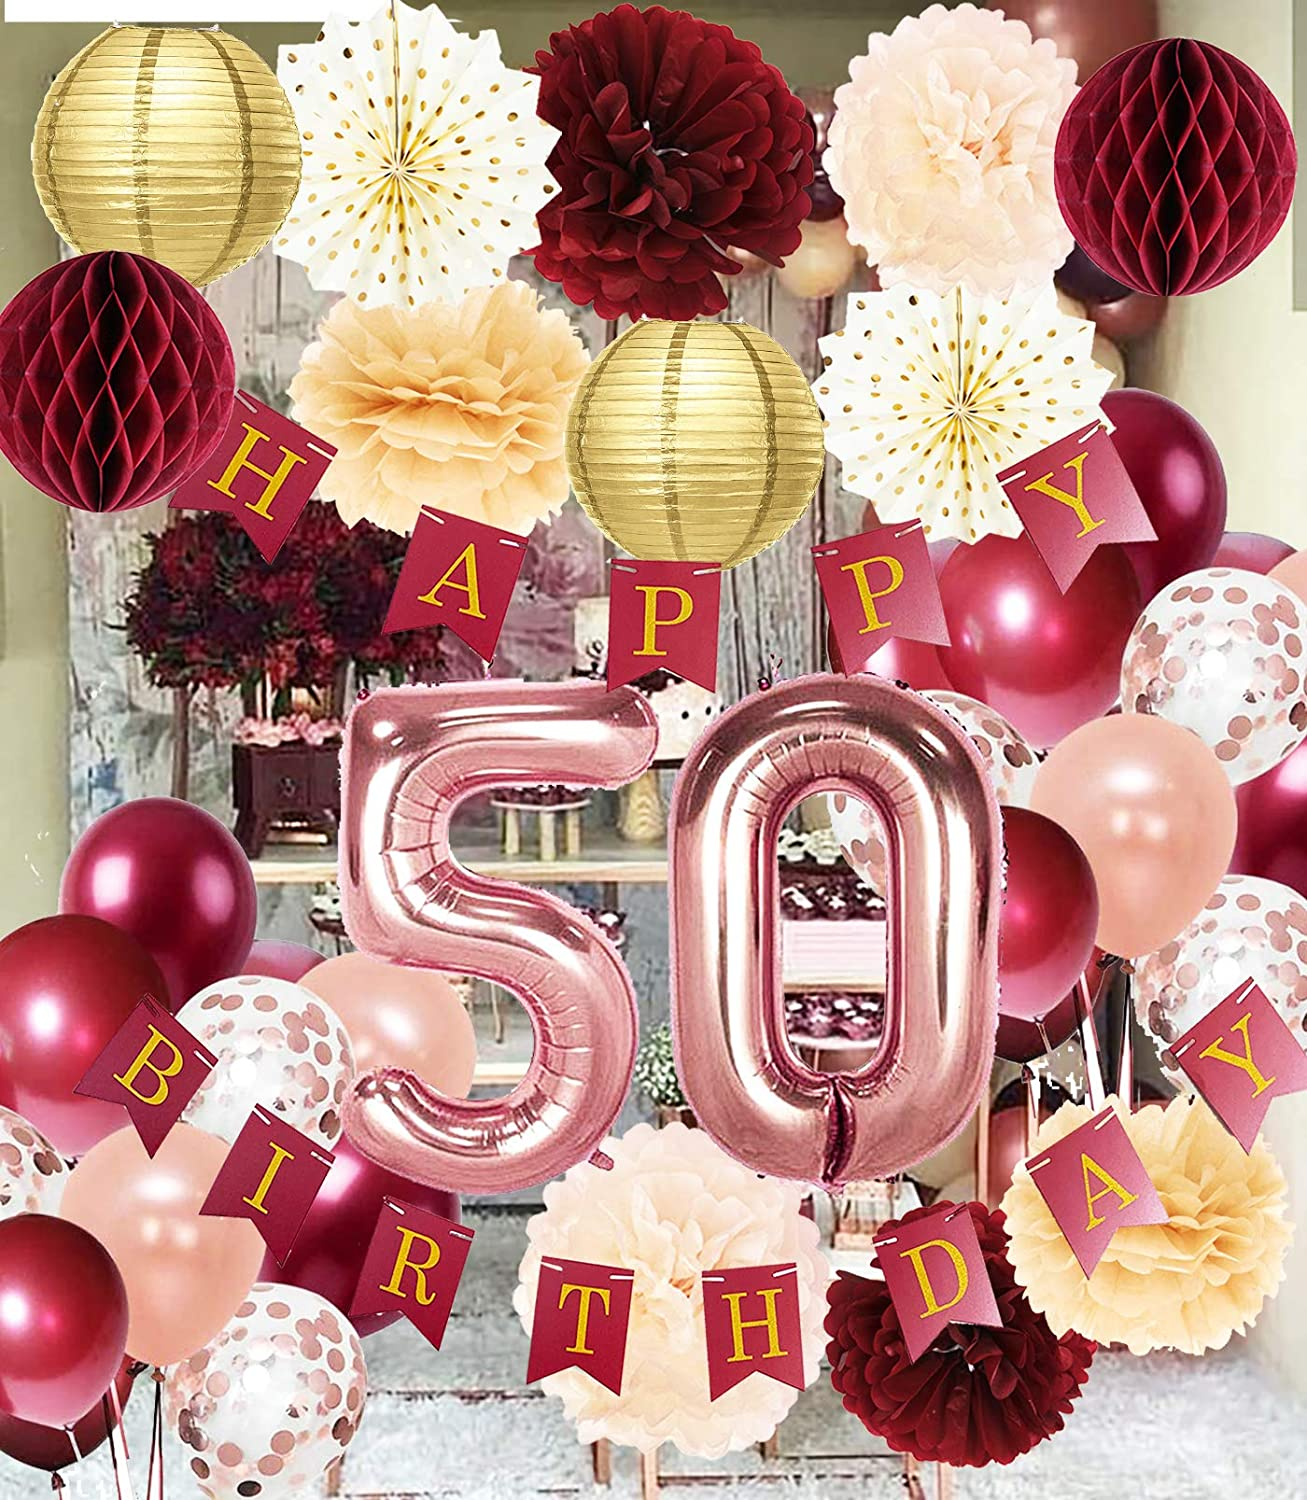 Amazon Com 50th Birthday Decorations For Women Burgundy Rose Gold Birthday Party Decorations Polka Dot Fans For 50 Fall Burgundy Rose Gold 50th Birthday Decorations Autumn Health Personal Care